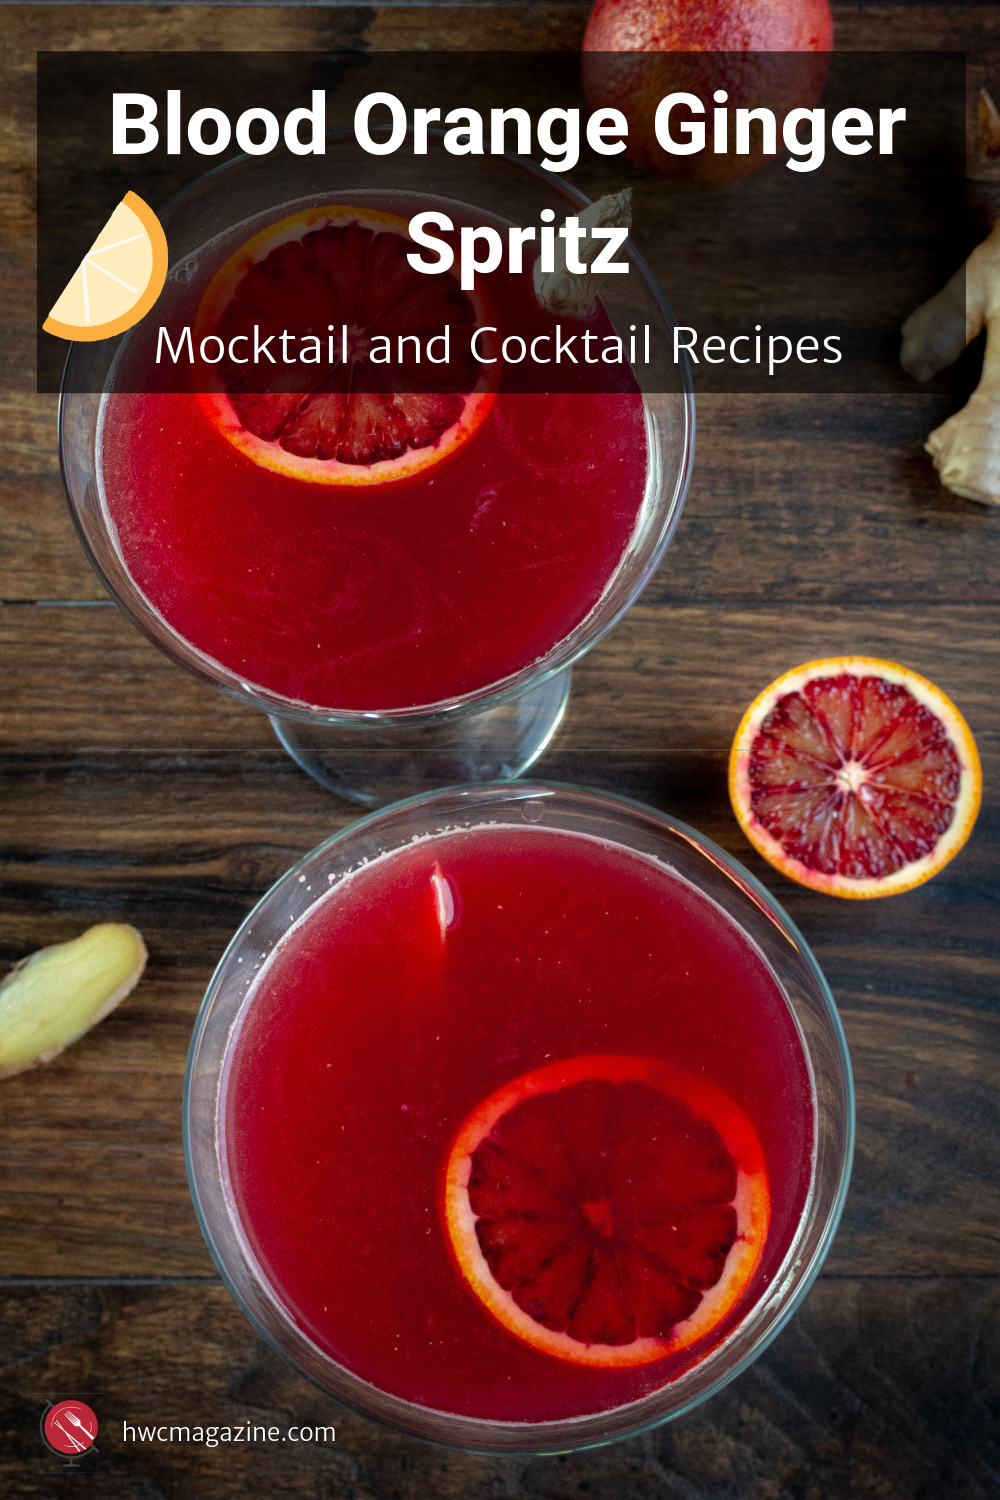 Blood Orange Ginger Spritz is a refreshing fruity Italian cocktail made with freshly squeezed blood oranges, vodka, Aperol, fresh ginger zest and a splash of seltzer water. Mocktail recipe without alcohol included too. #bloodoranges #italian #cocktail #mocktail #beverage #drink #party / https://www.hwcmagazine.com